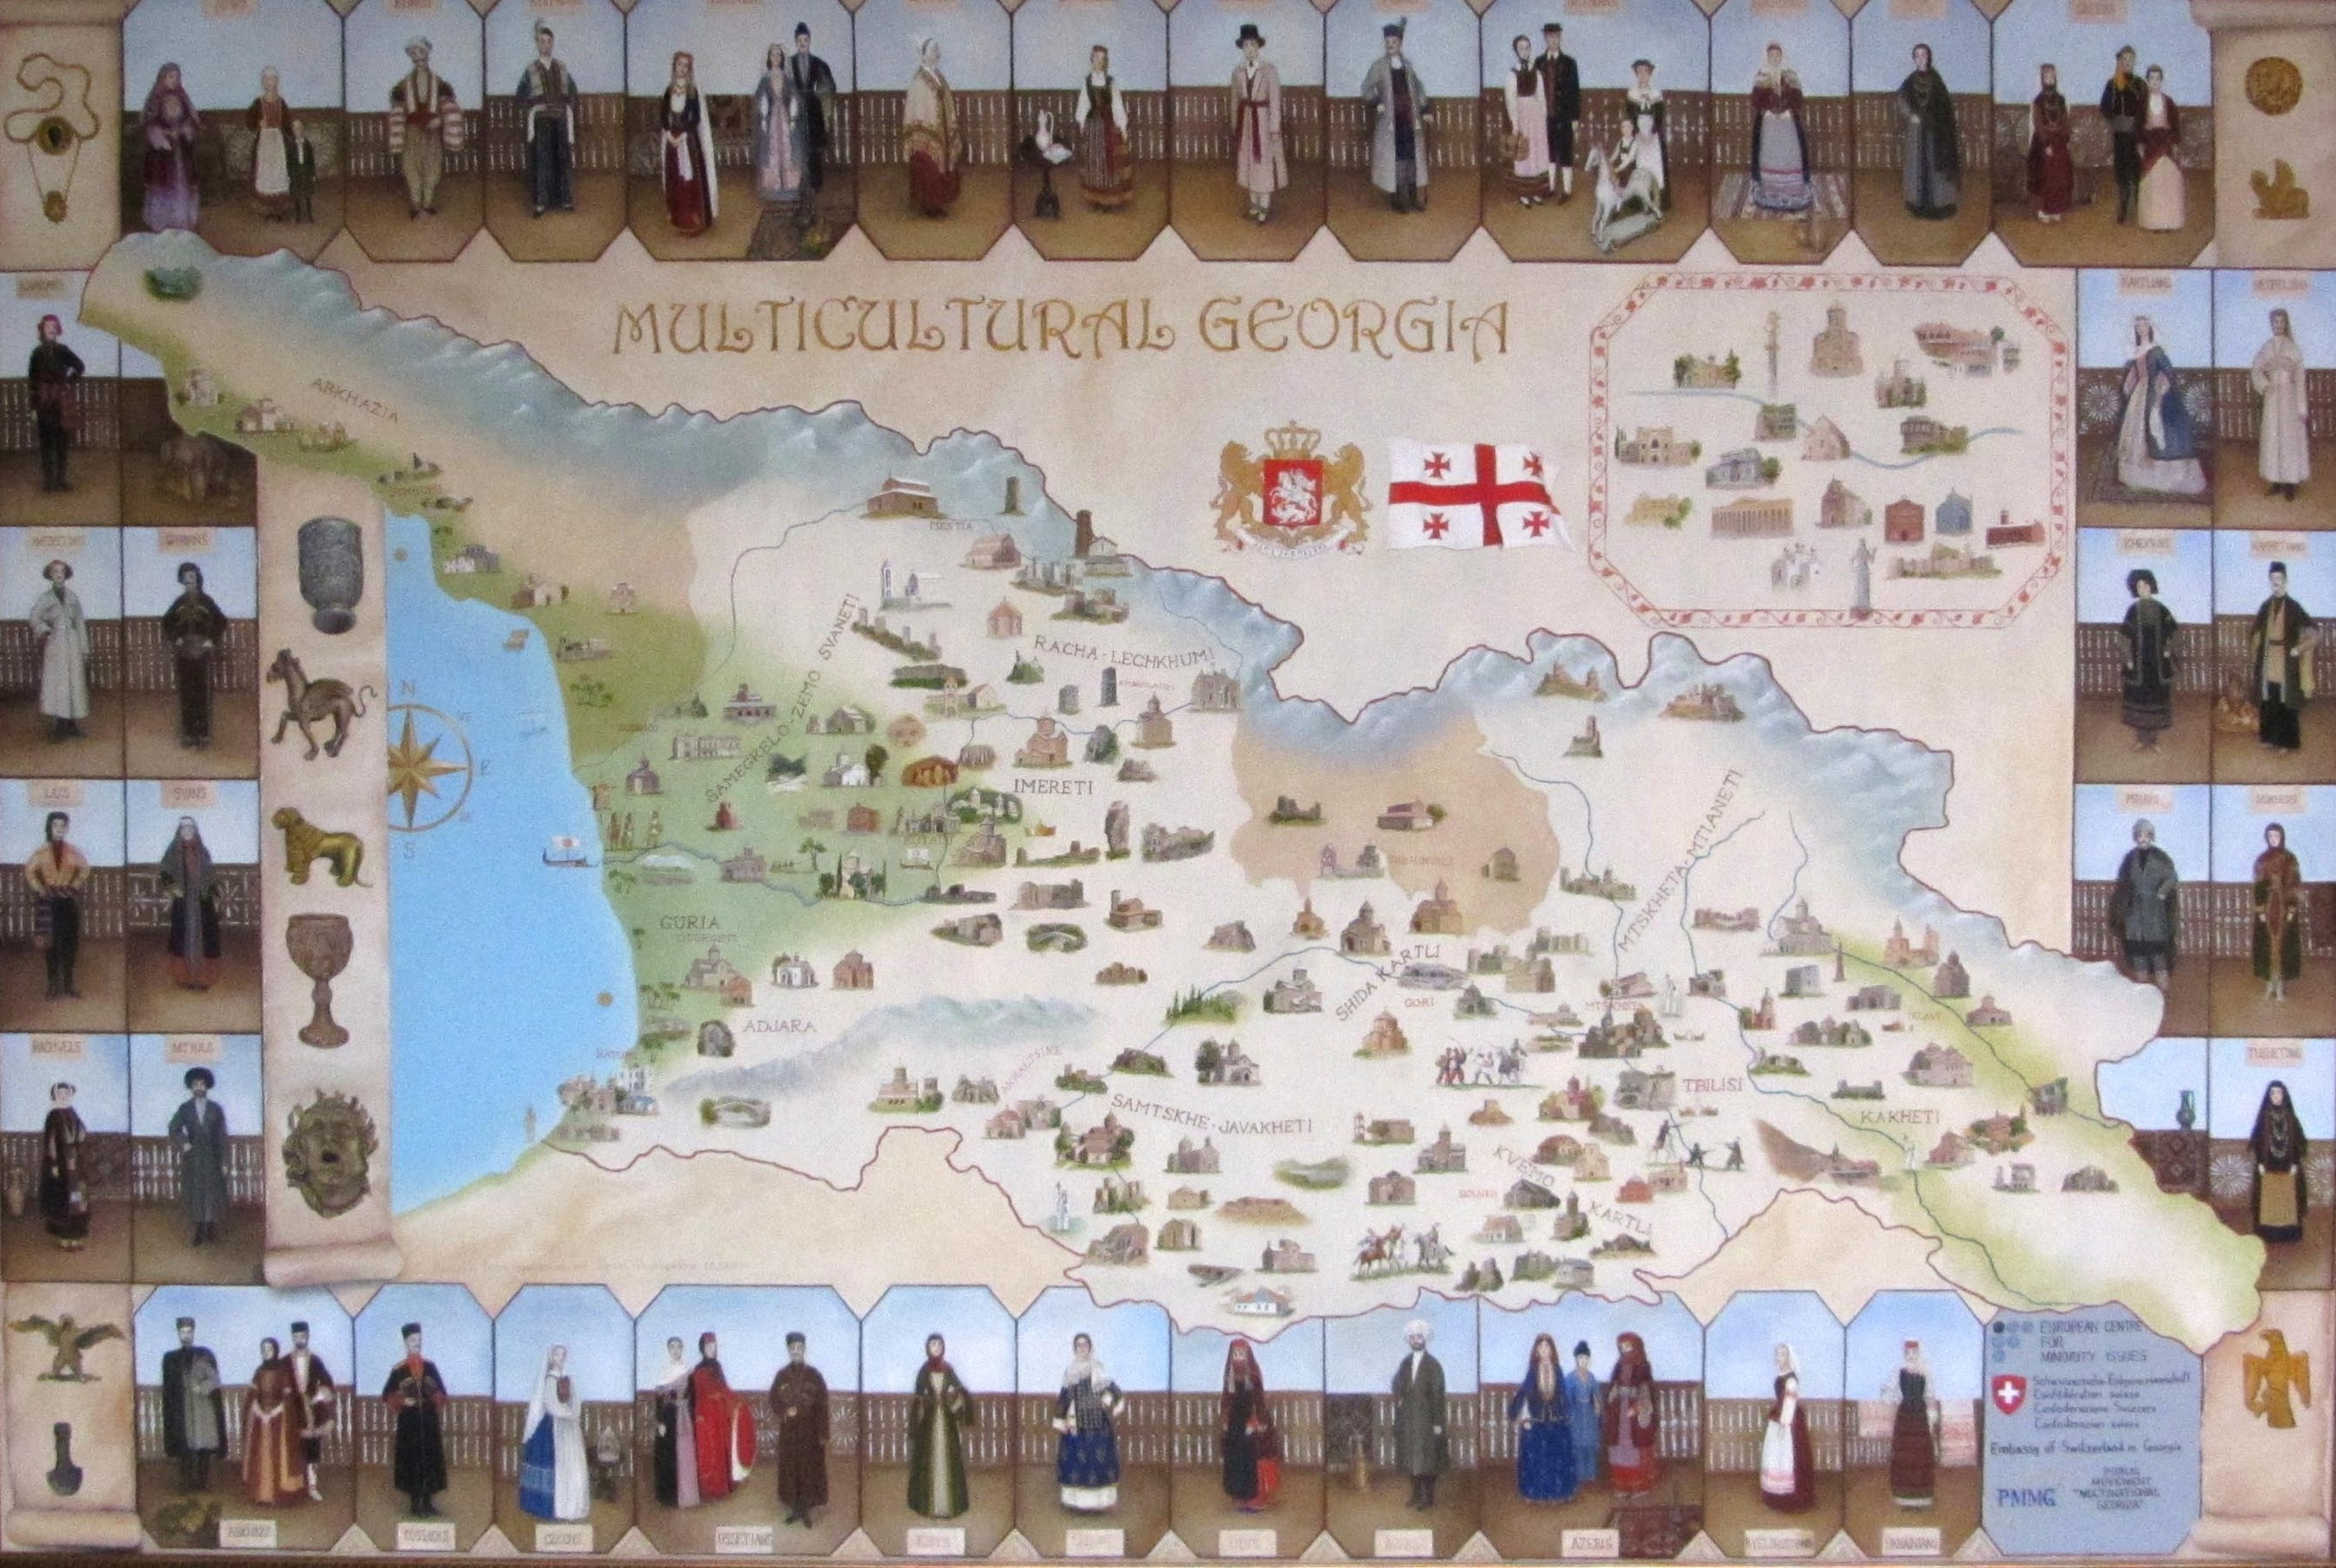 Maps of georgia georgia about this map of georgia depicts cultural sites and people of the georgian regions in national clothing past and present click on the map to see a larger gumiabroncs Images